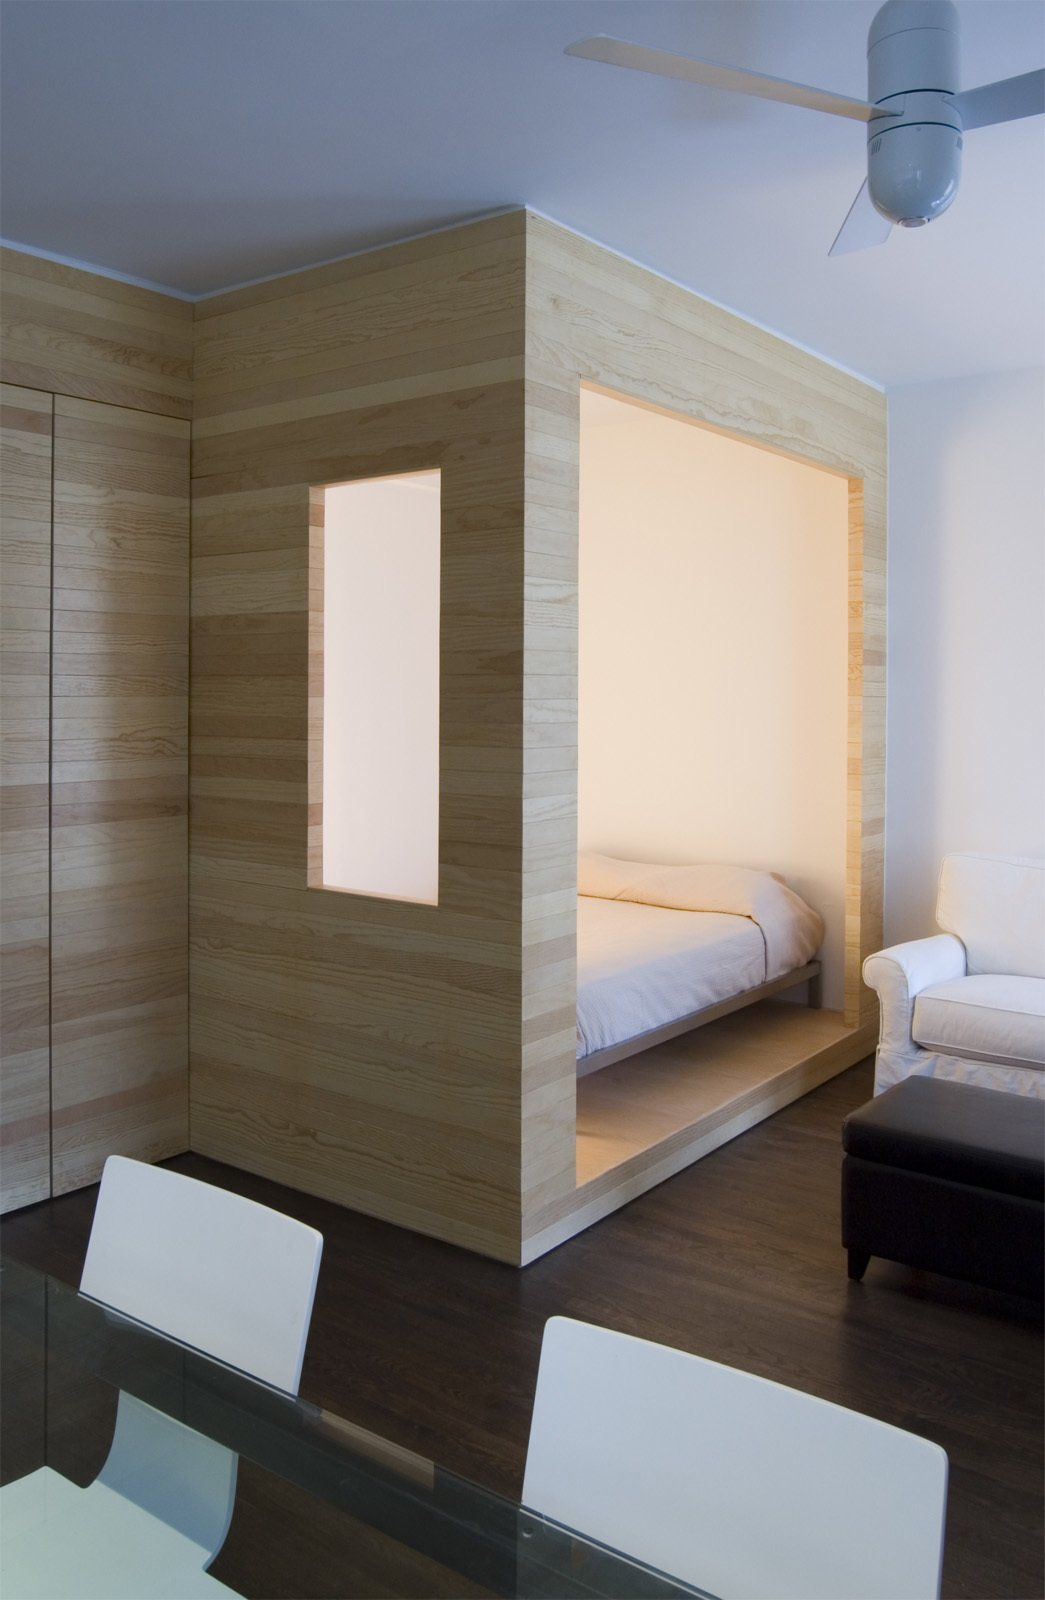 At the opposite end of the studio, Framework Architecture created a partially enclosed sleeping nook that is spacious enough to fit a full-size bed.  Bedroom